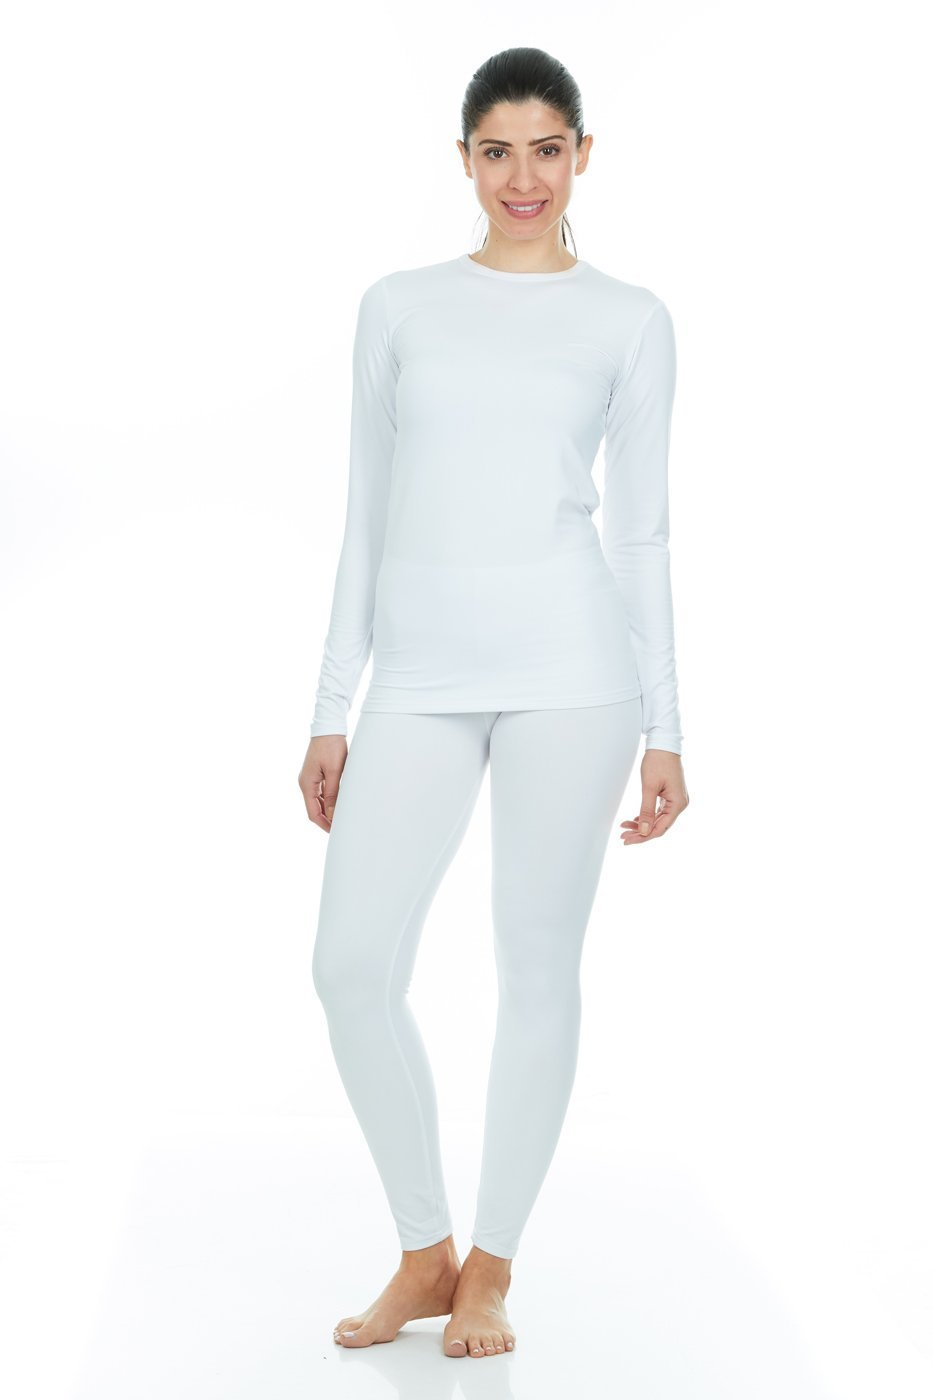 Thermajane Women's Ultra Soft Thermal Underwear Long Johns Set with Fleece Lined (Medium, White) by Thermajane